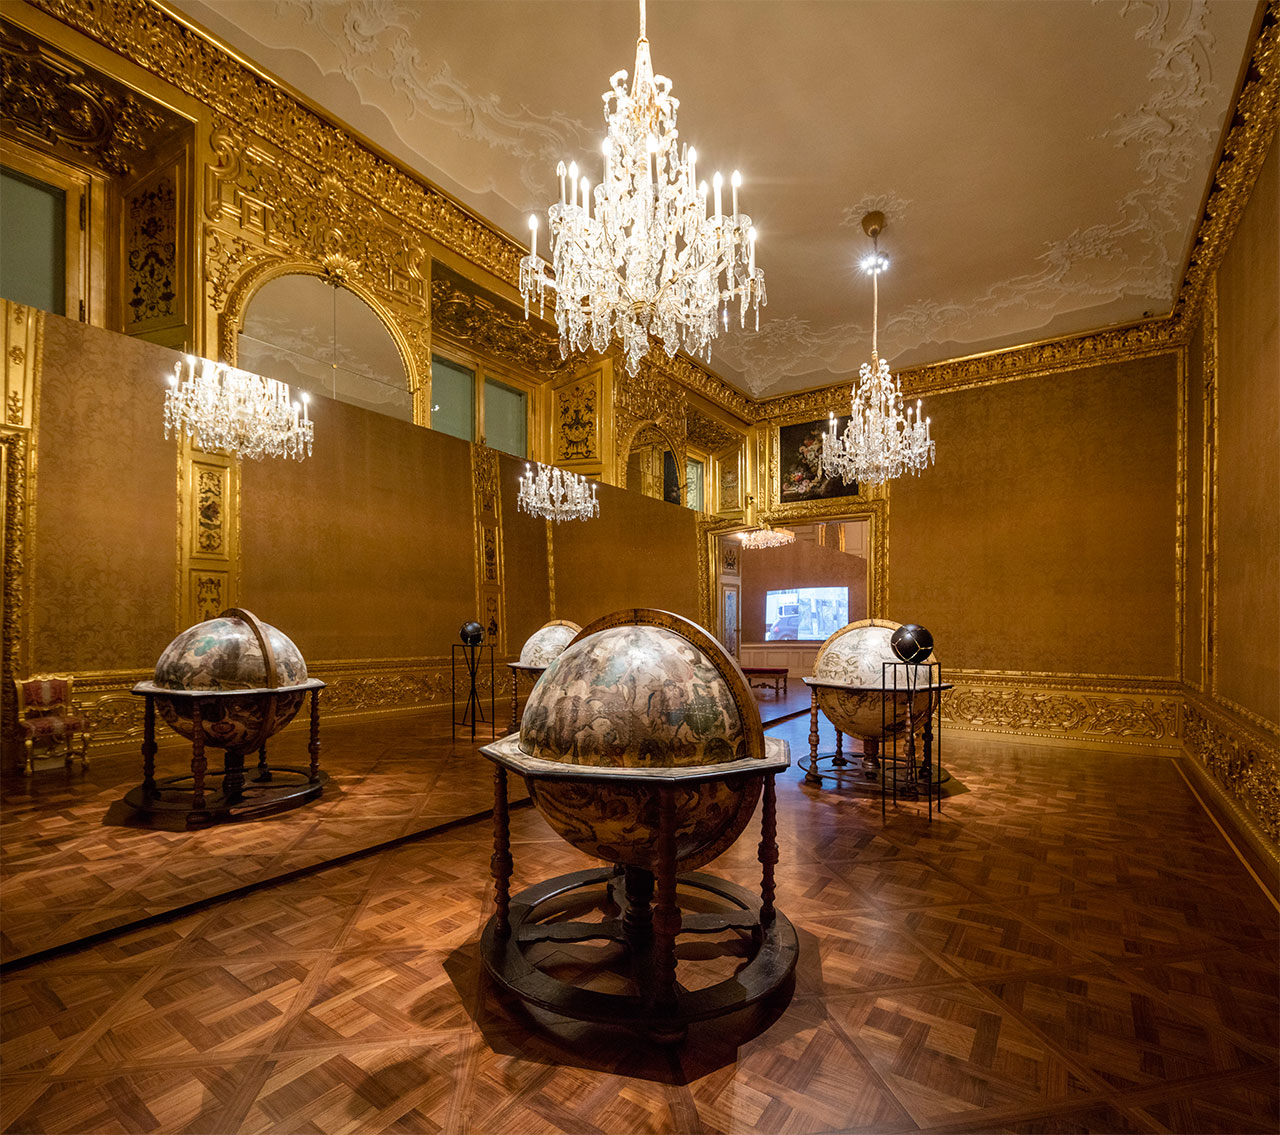 Olafur EliassonLines for horizons, 2014Partially silvered glass sphere, acrylic paint (black), stainless steel, paint (black)151,5 x 36 x 36 cm, glass sphere: ø 32 cm The Winter Palace of Prince Eugene of Savoy, Vienna 2015 Photo by Anders Sune BergCourtesy of The Juan & Patricia Vergez Collection, Buenos Aires© Olafur Eliasson.